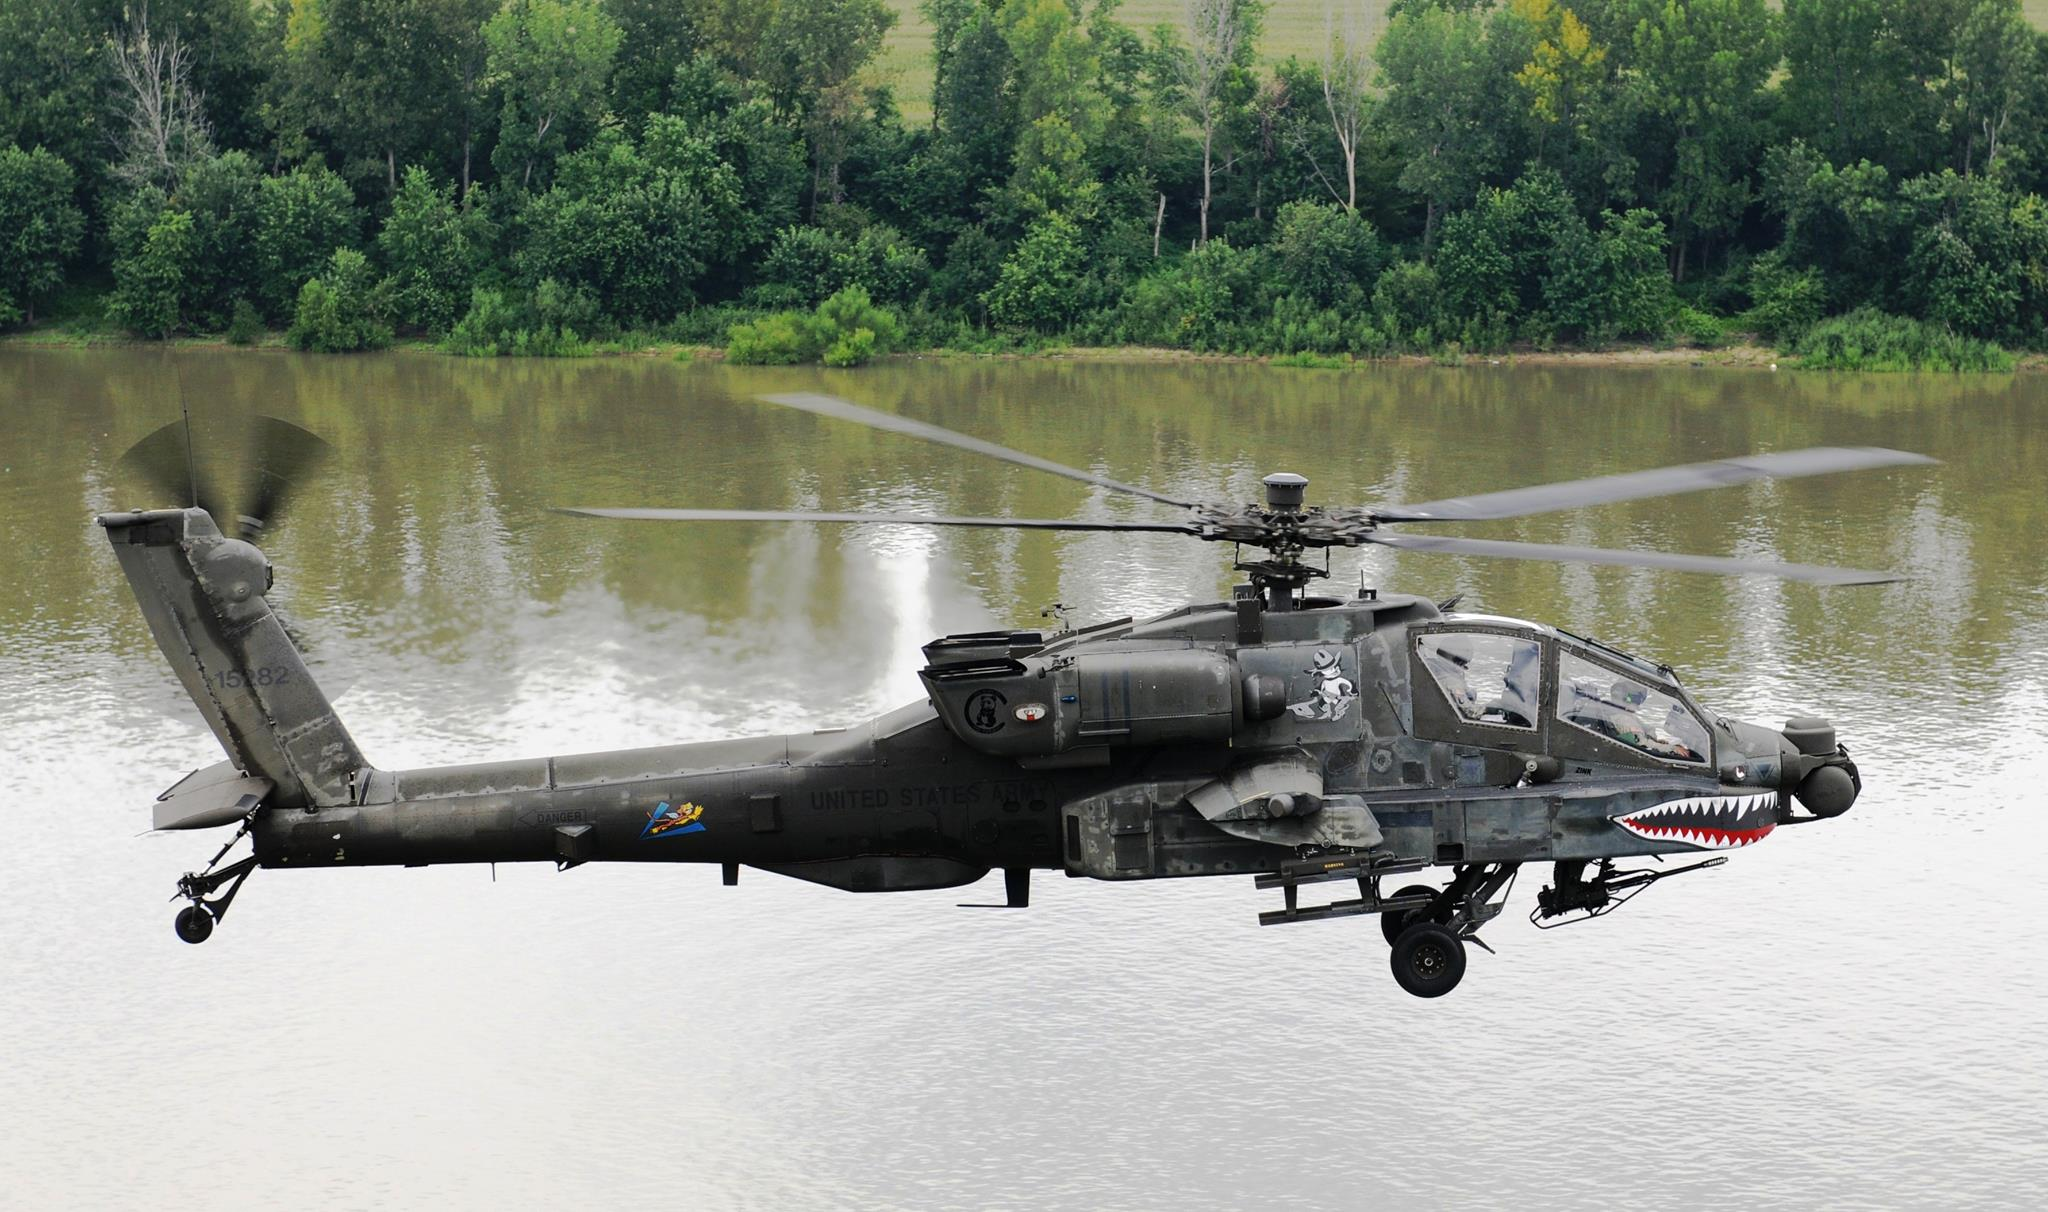 UH-60 Blackhawk Assault Helicopters